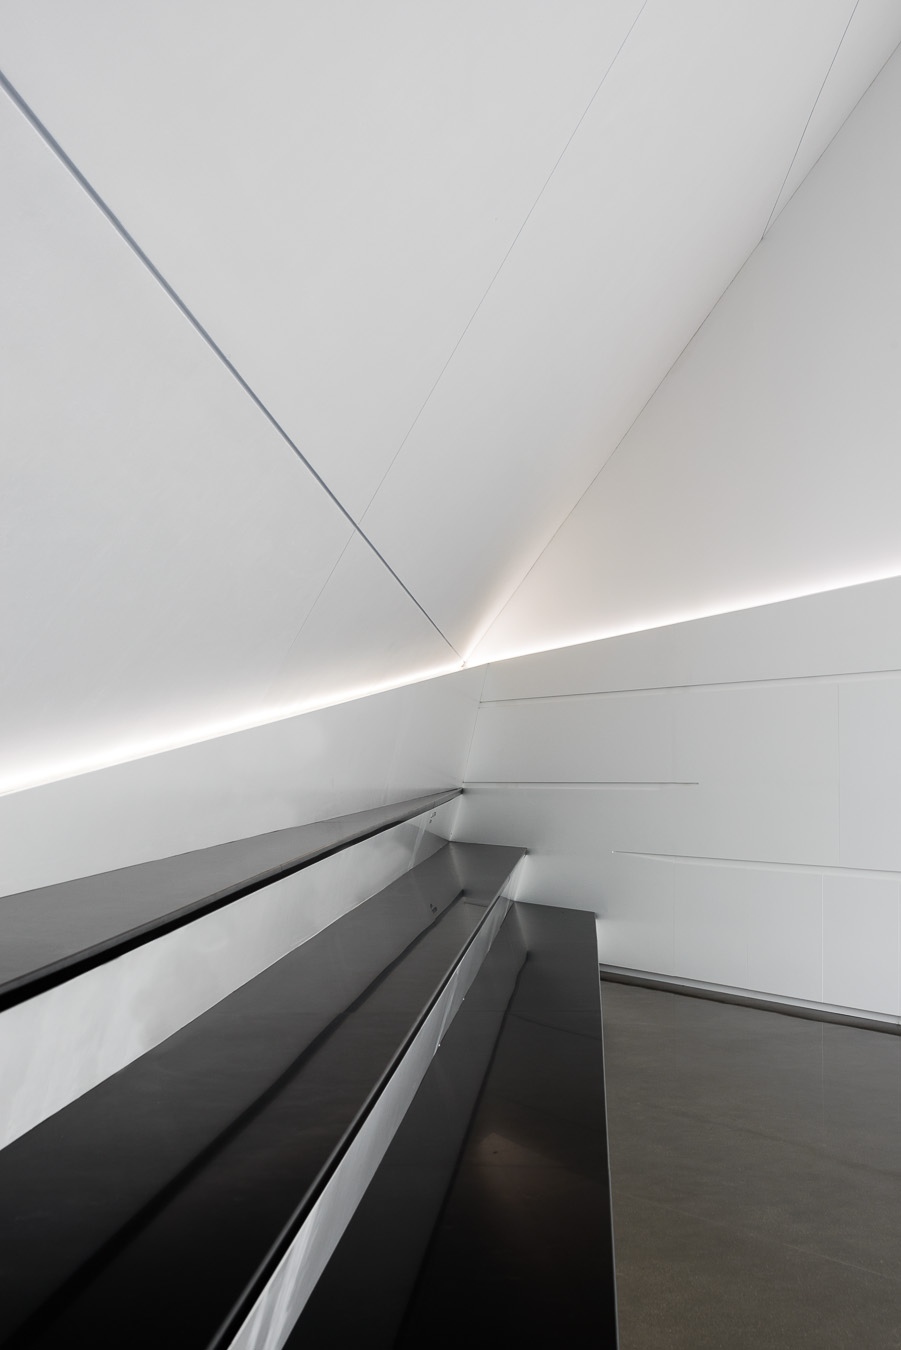 218-Zaha Hadid Broad Museum Lansing Doublespace Toronto Architectural Photography.jpg